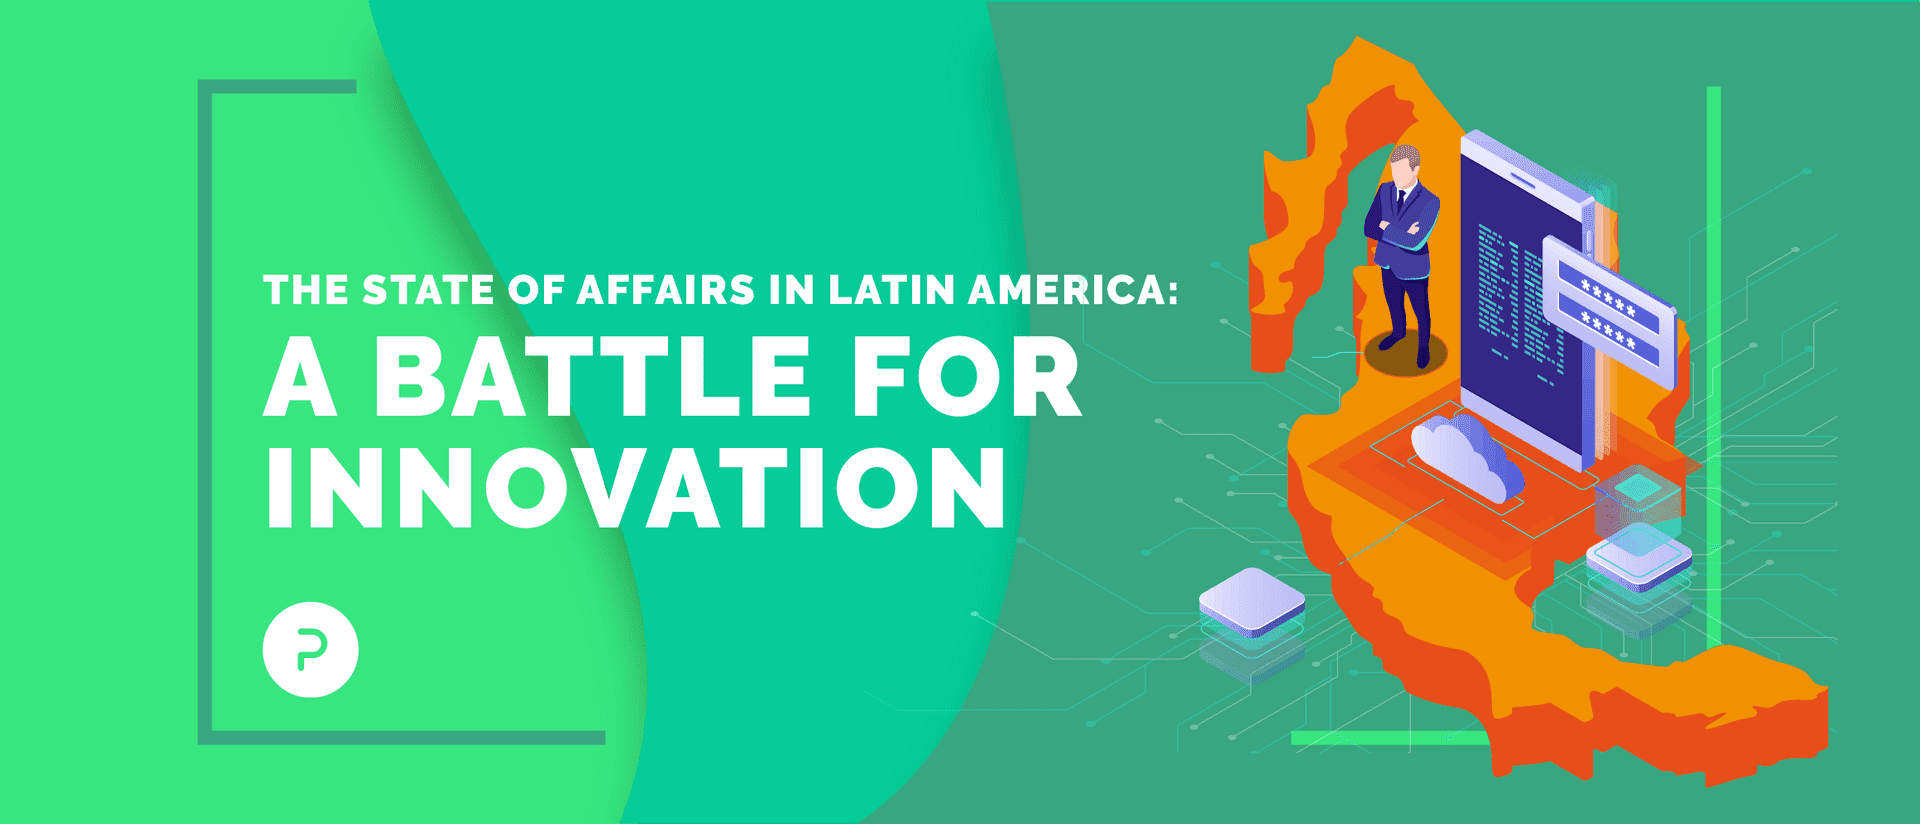 The State of Affairs in Latin America: A Battle for Innovation